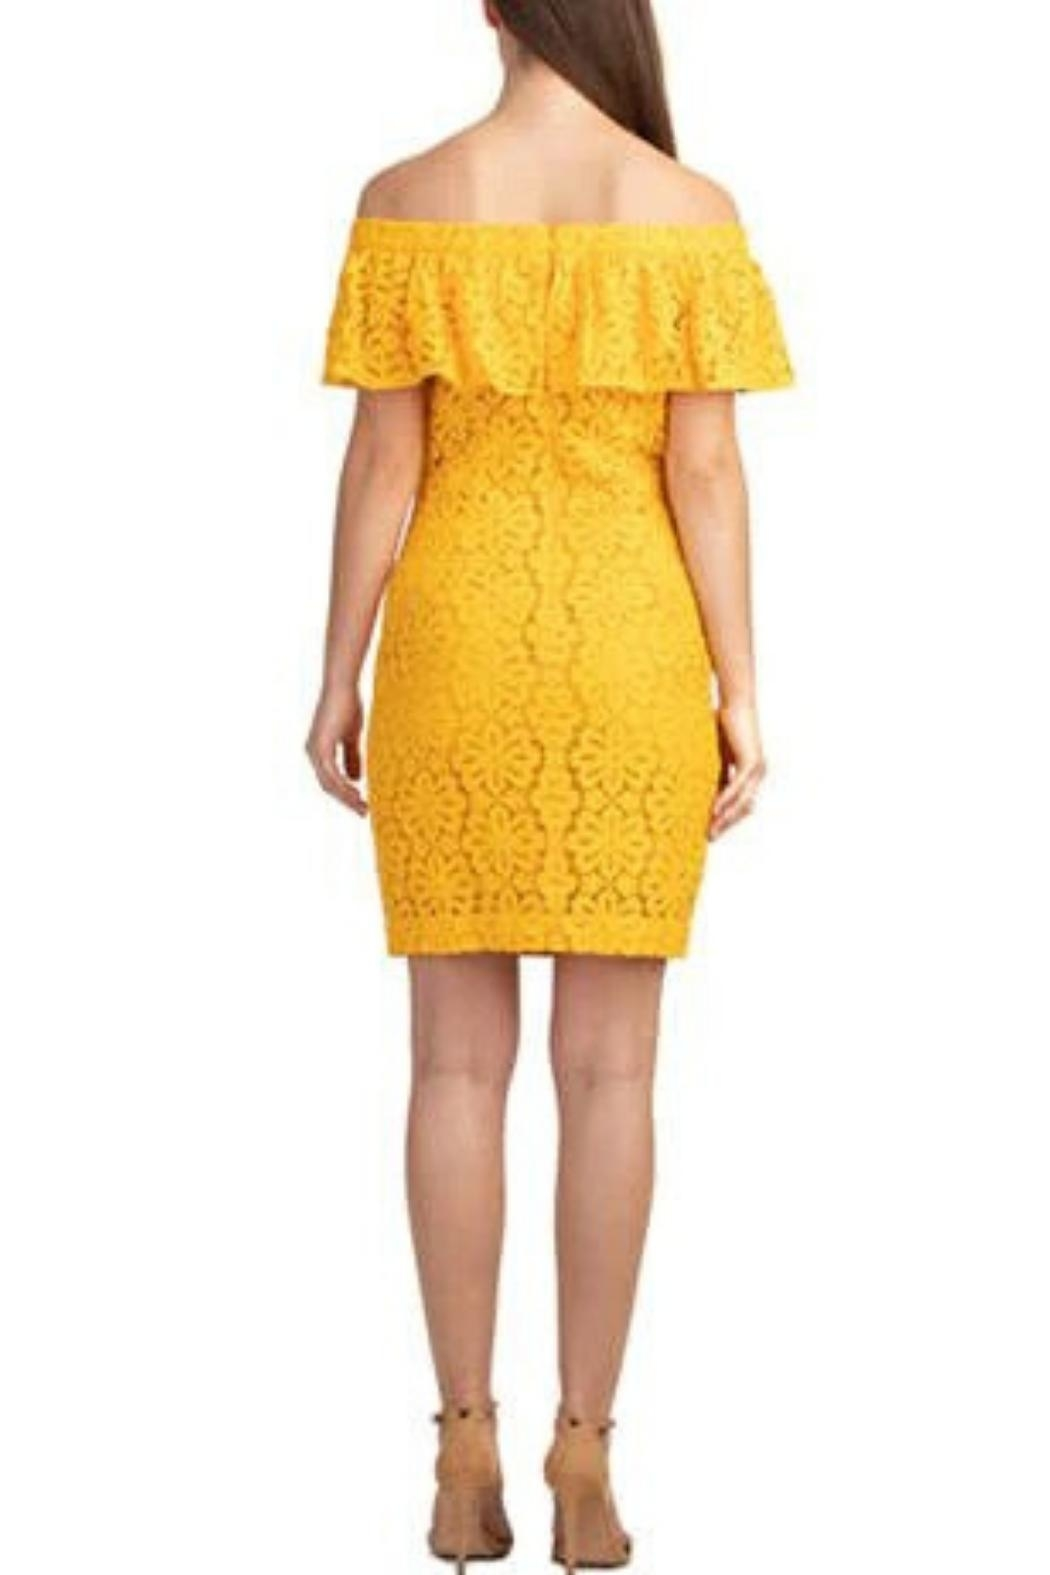 Trina by Trina Turk Floral Off-The-Shoulder Dress - Front Full Image